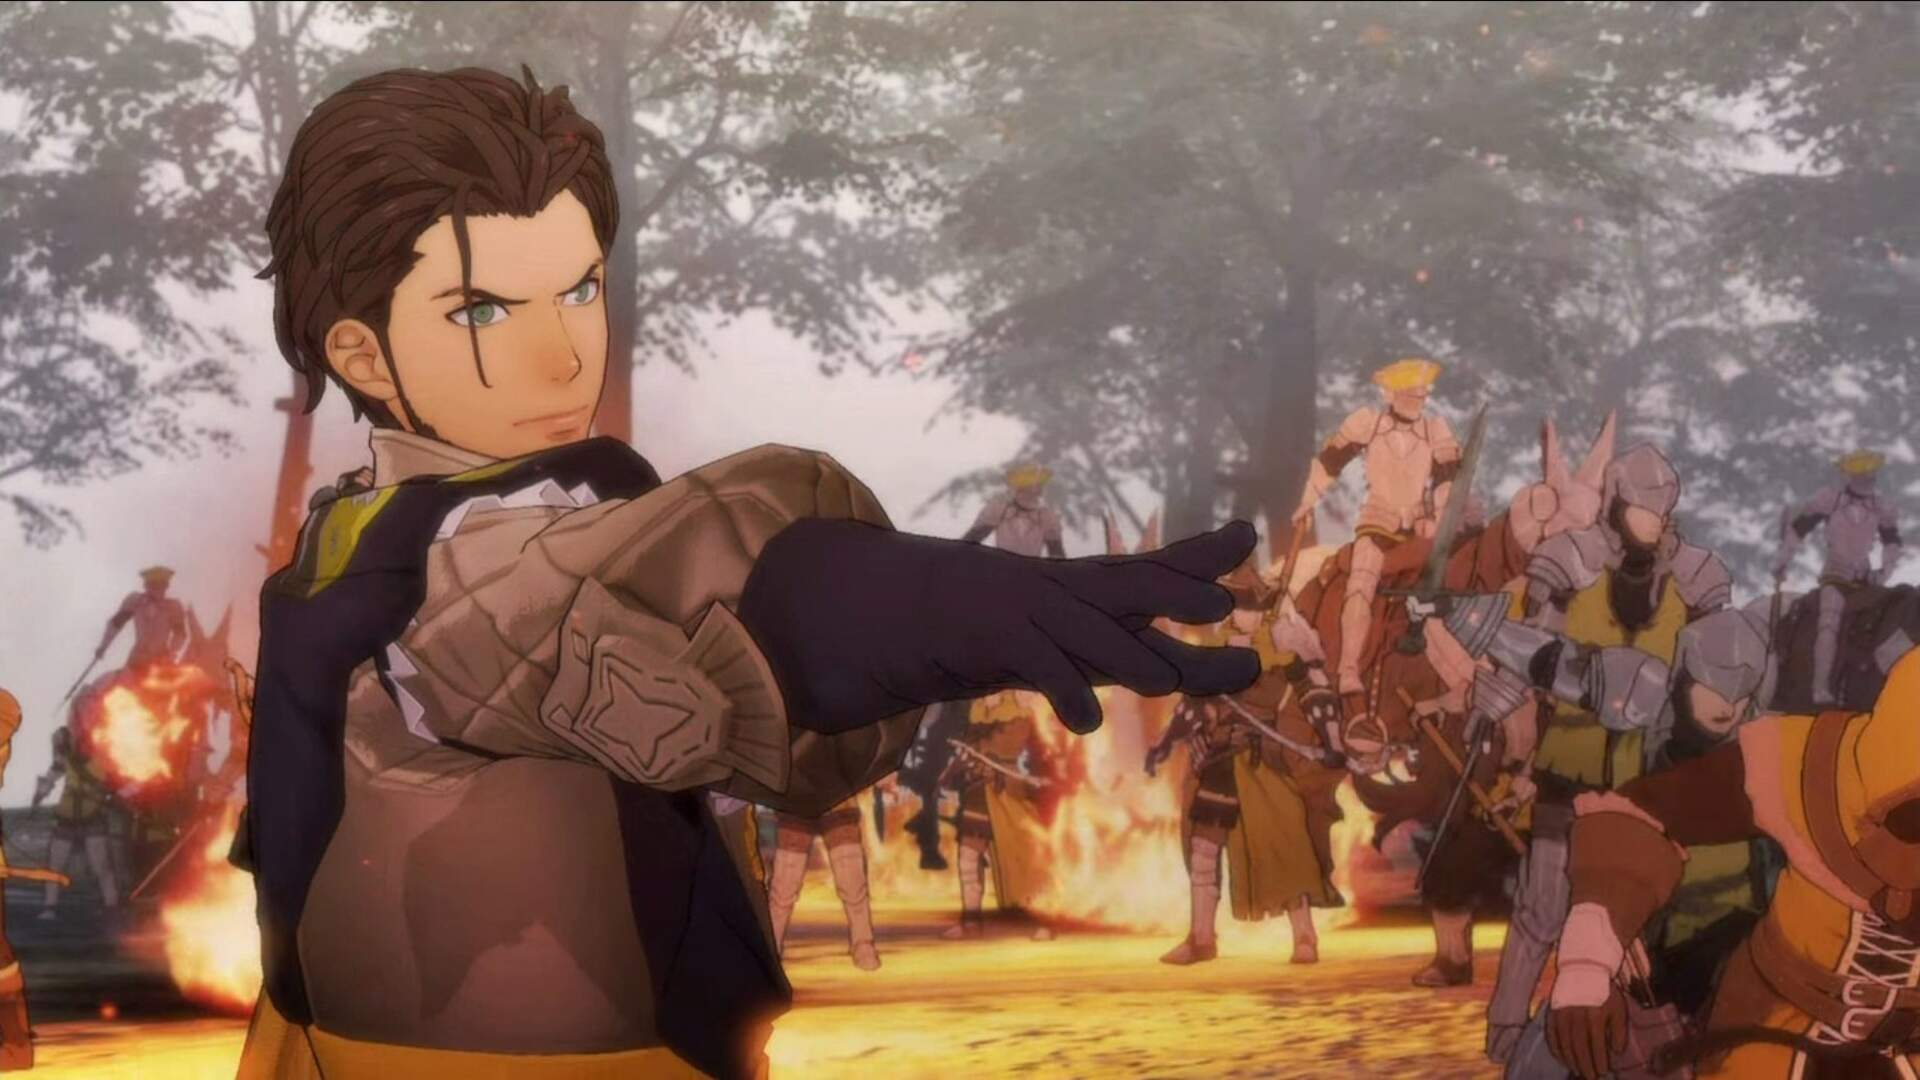 Fire Emblem: Three Houses Characters Ranked - All Teachers and Students Pitted Against Each Other